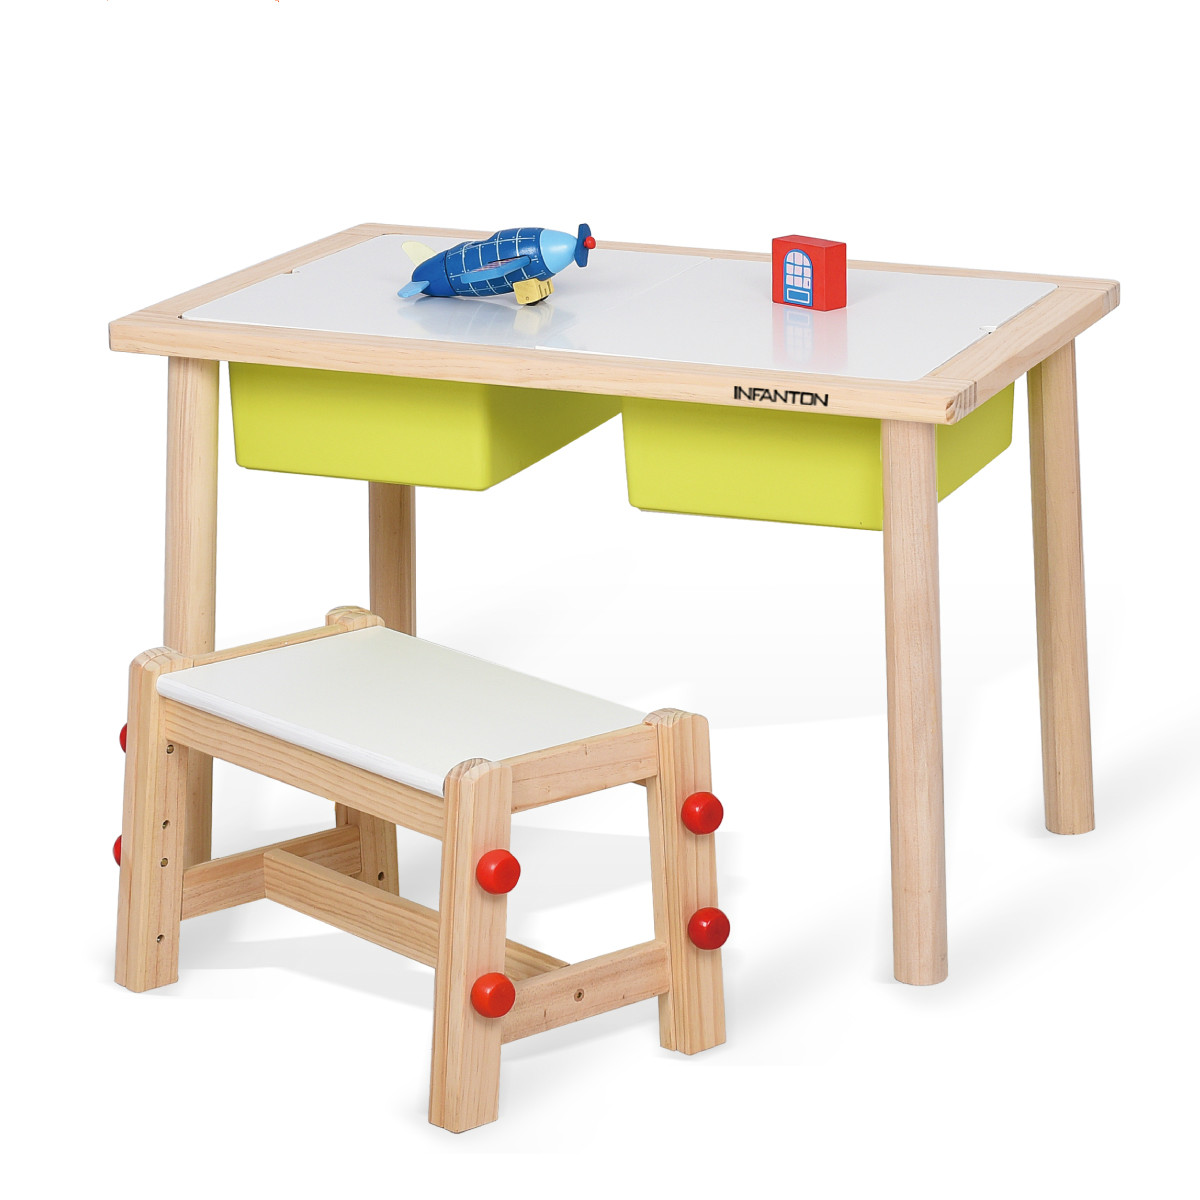 Children's Desks And Chairs Student Learning Table Toy Table Kindergarten Game Table Baby Chair